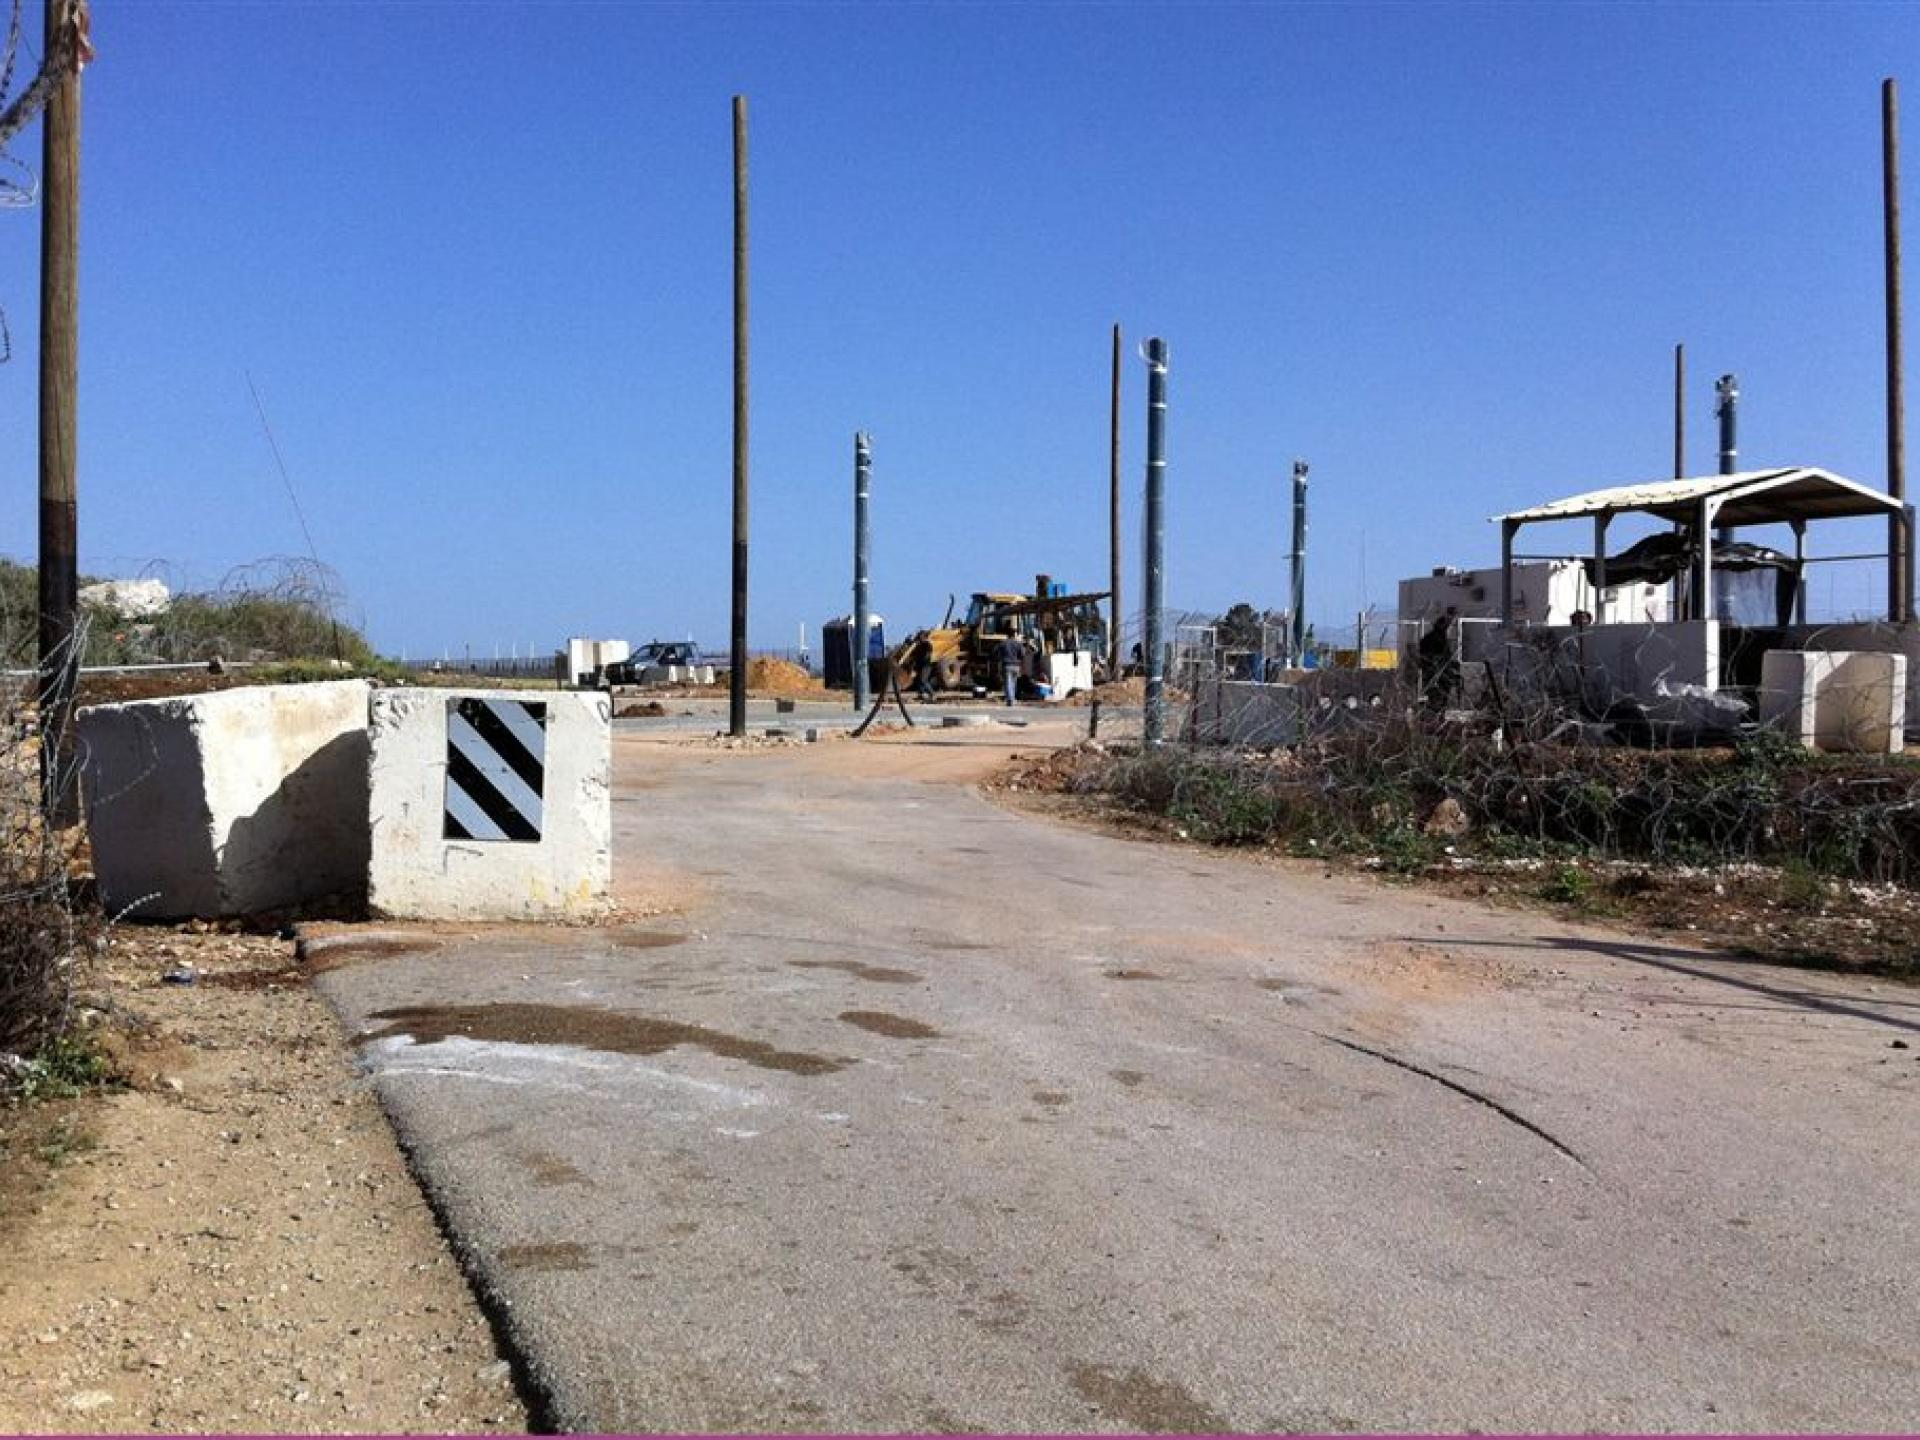 Tura/Shaked checkpoint 22.04.12